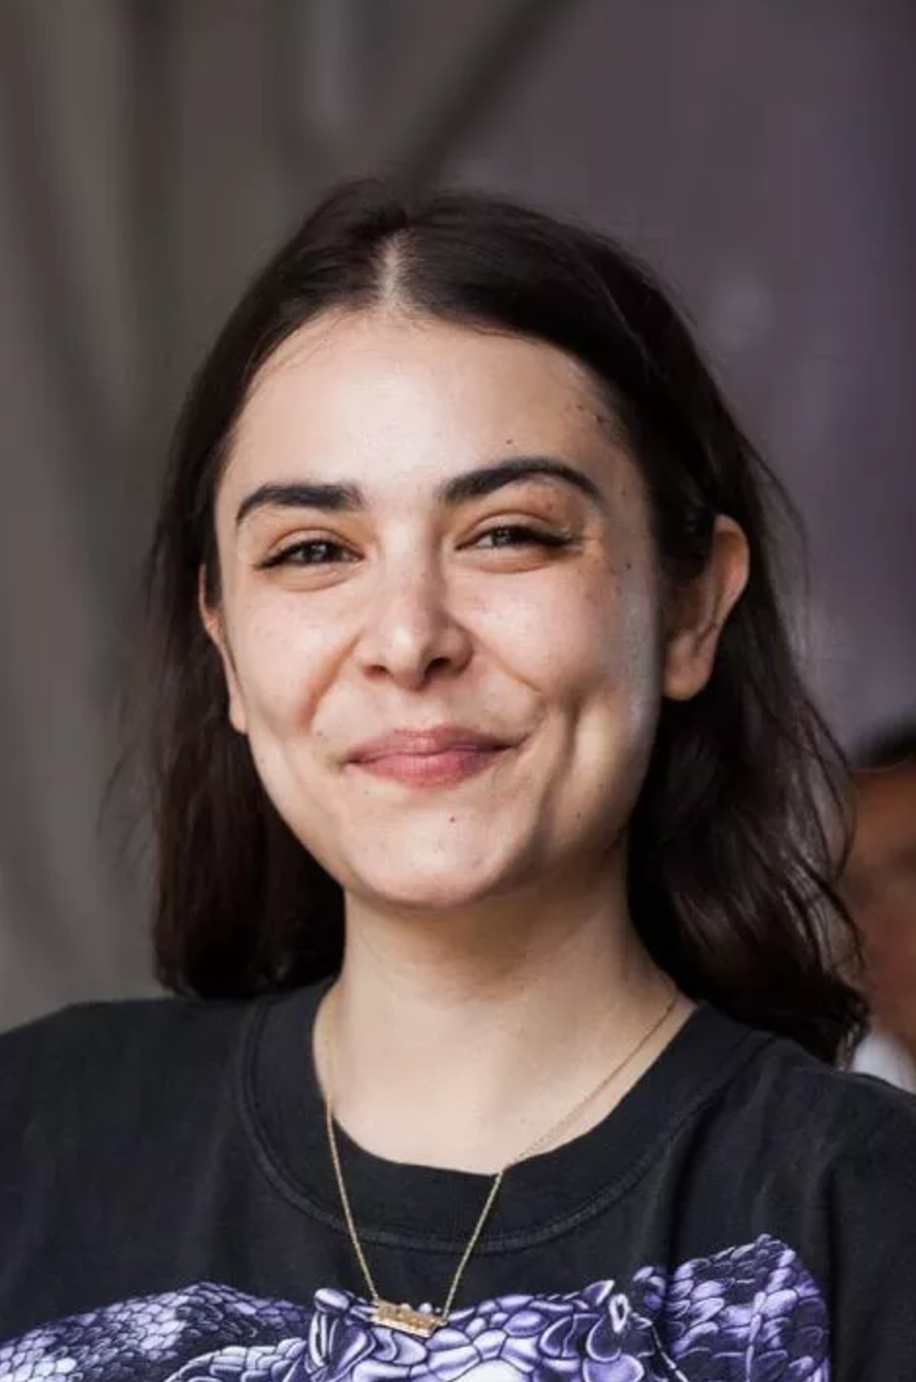 "Naomi Zeichner   A recent transplant to YouTube, Naomi Zeichner is the previous music editor of Buzzfeed and former editor-in-chief of  THE FADER . She has been featured in Recode, and has made the  Forbes  ""30 Under 30: Media"" list in 2016. You can follow her on  Twitter  and  Instagram ."